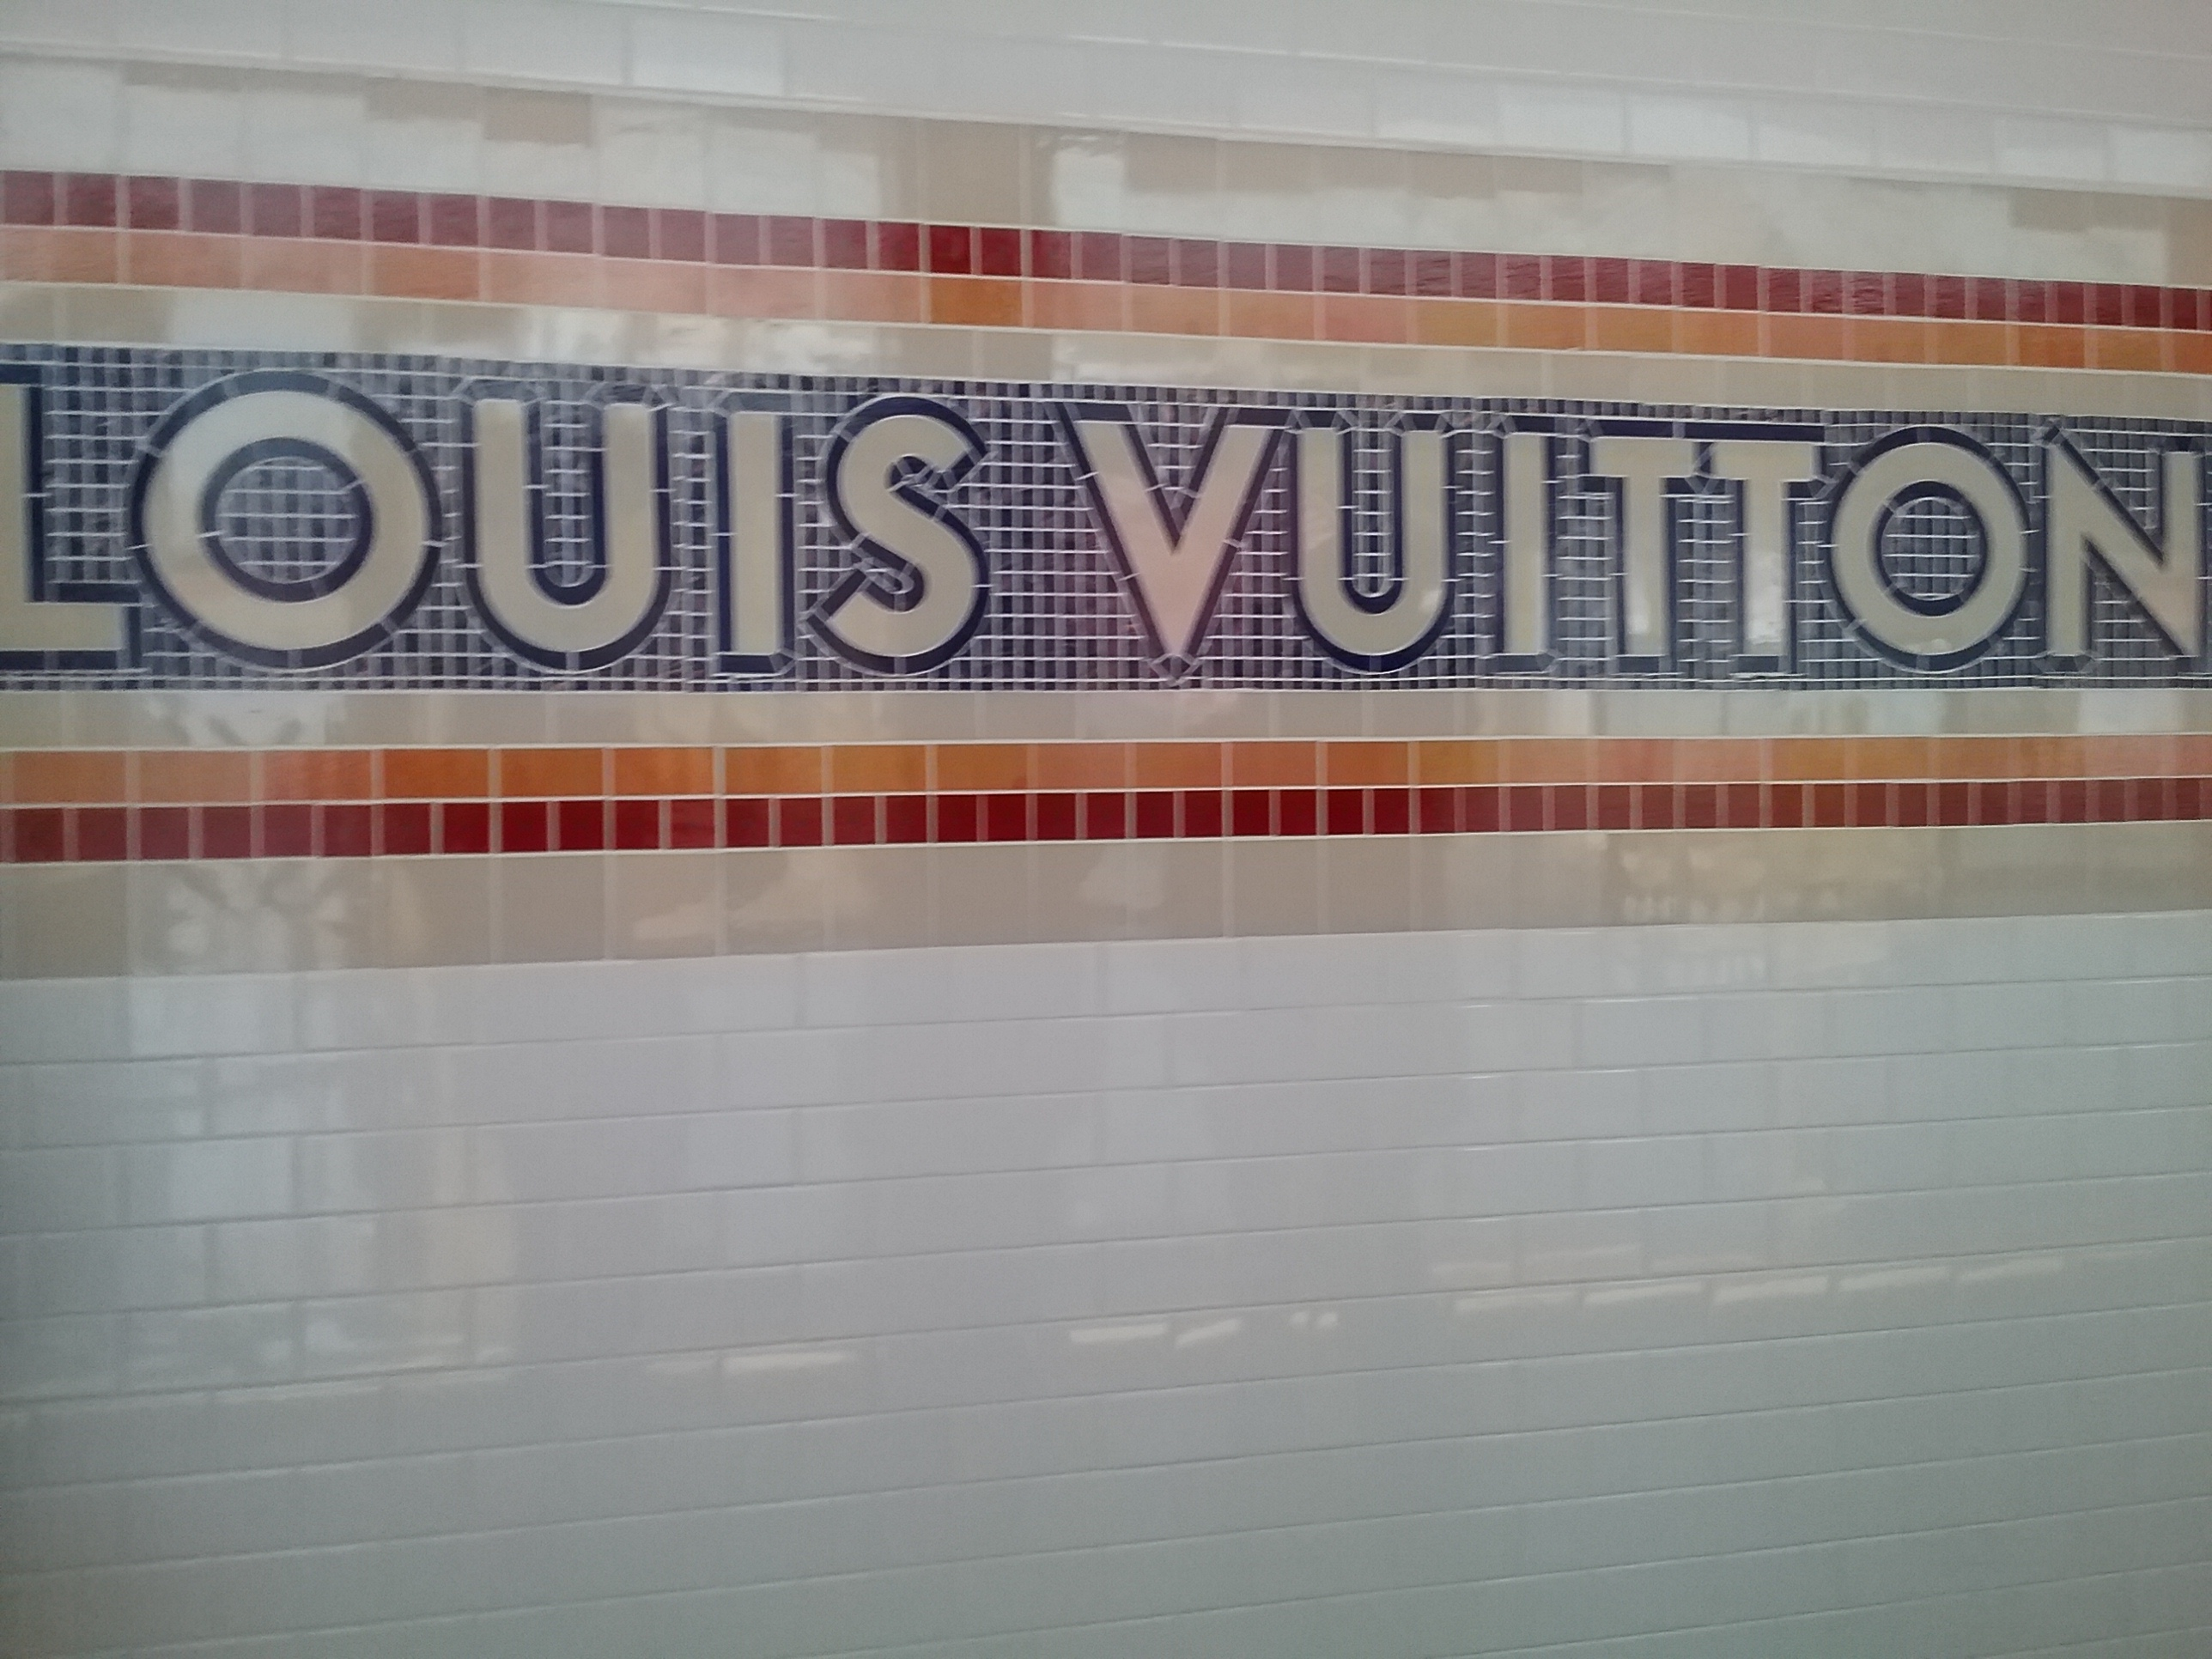 Louis Vuitton subway pic by @debrafrombrooklyn